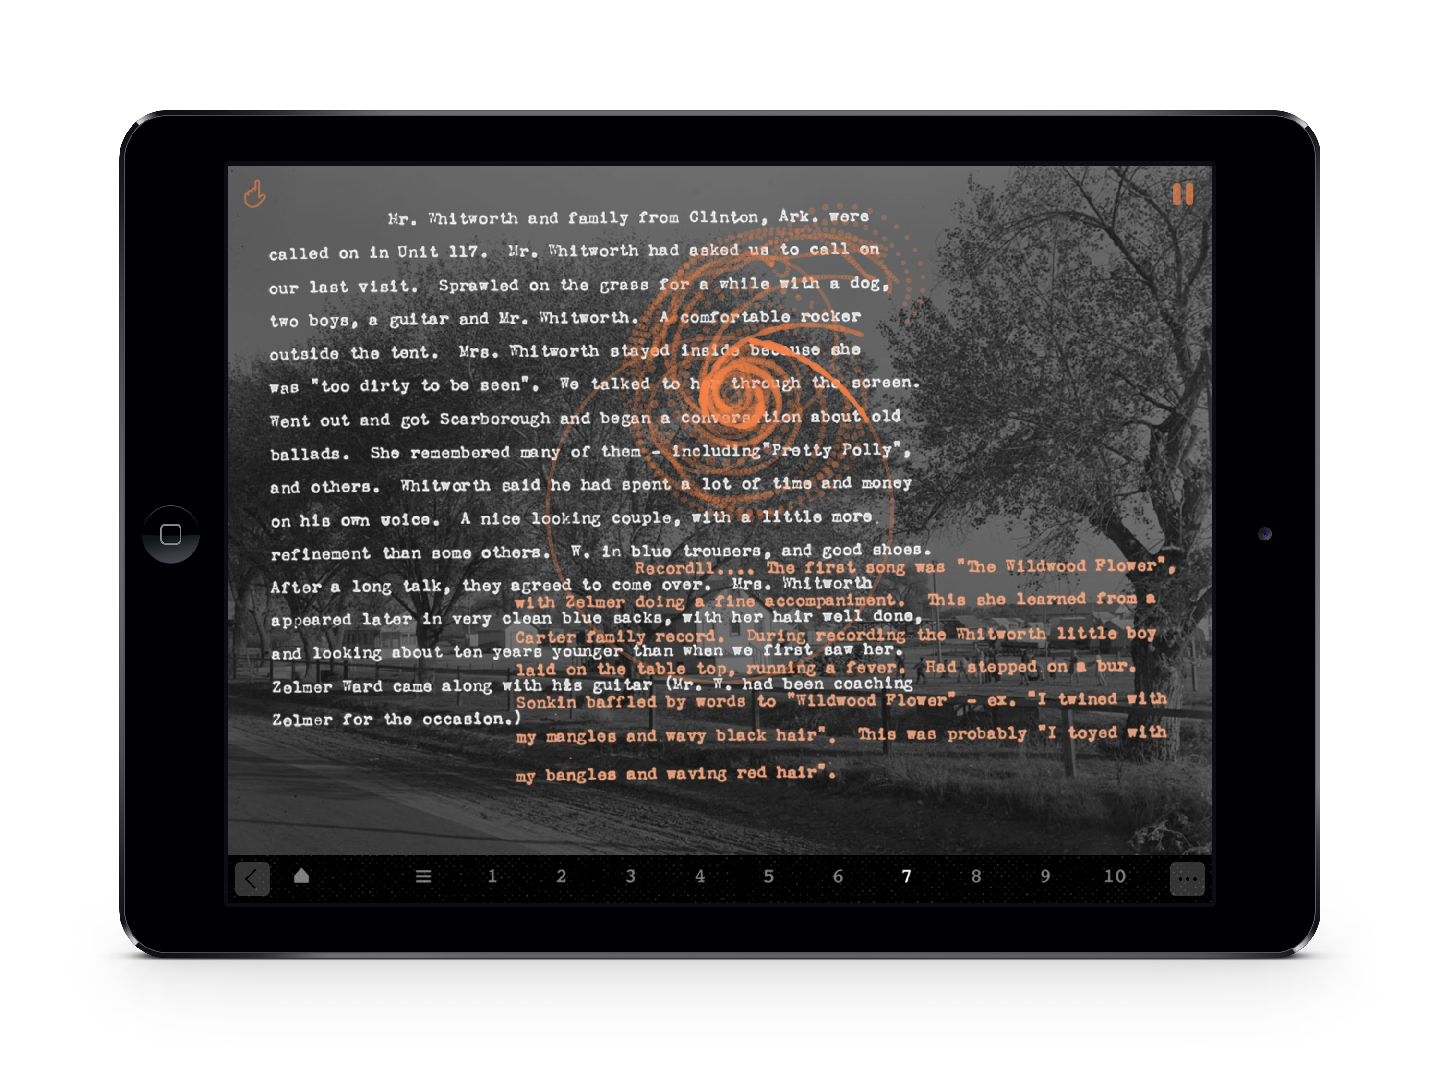 A screenshot of an ipad featuring text on a dark photo background